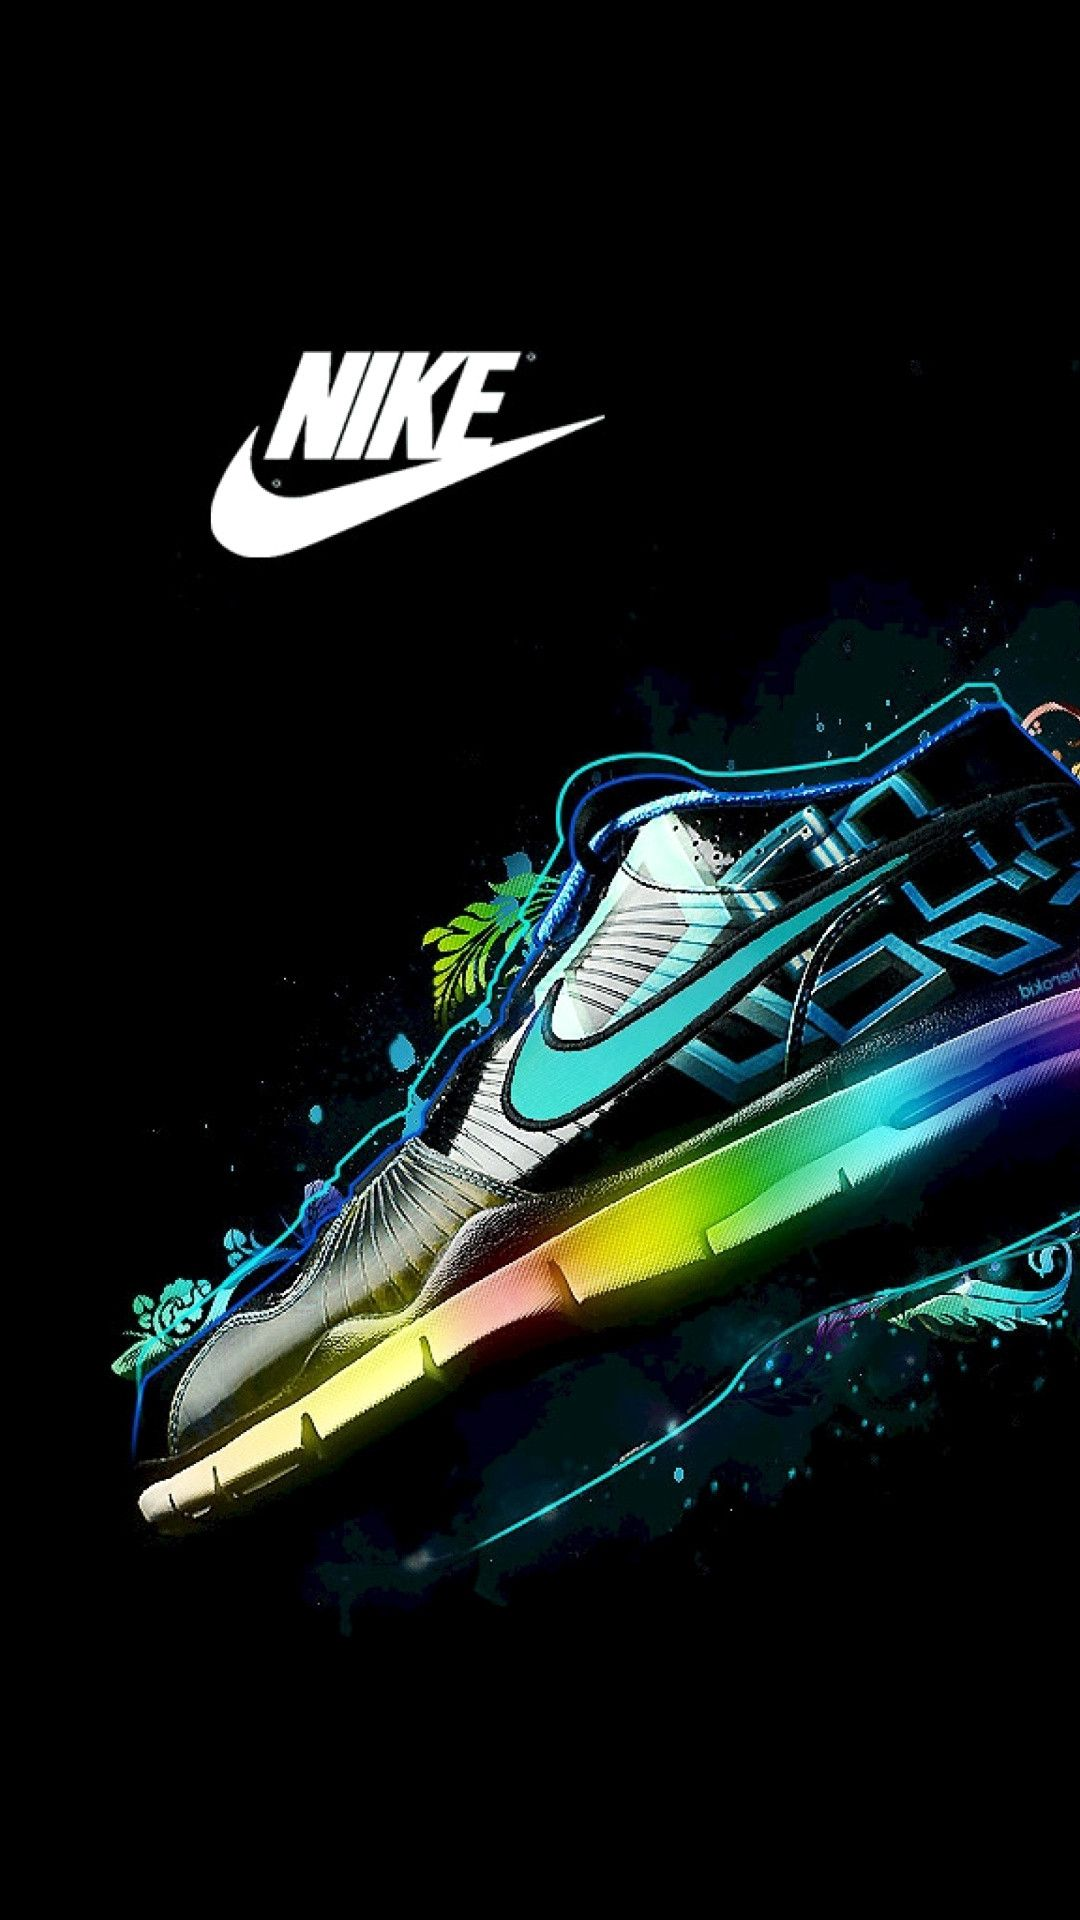 Descargar Nike Wallpapers Hd Resolution para Iphone Wallpaper »Hupages